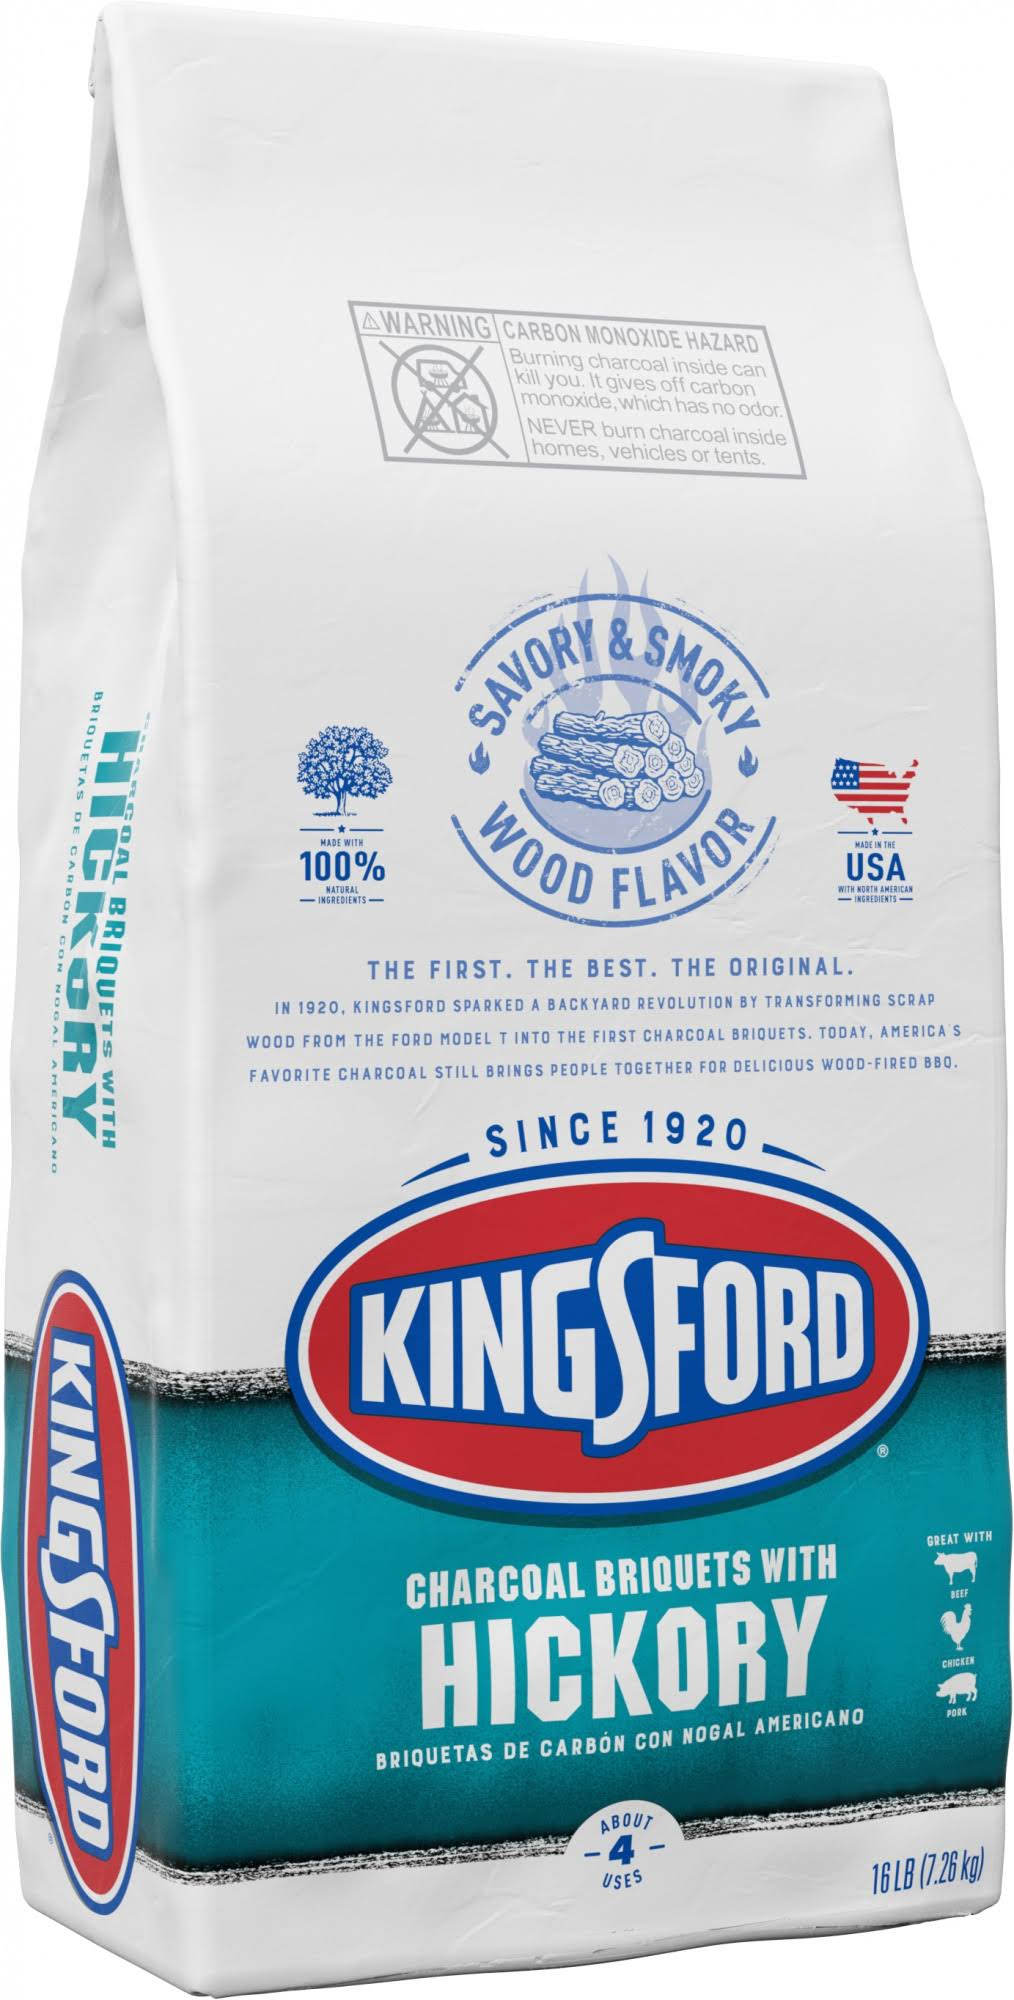 Kingsford Charcoal Briquets, with Hickory - 16 lb